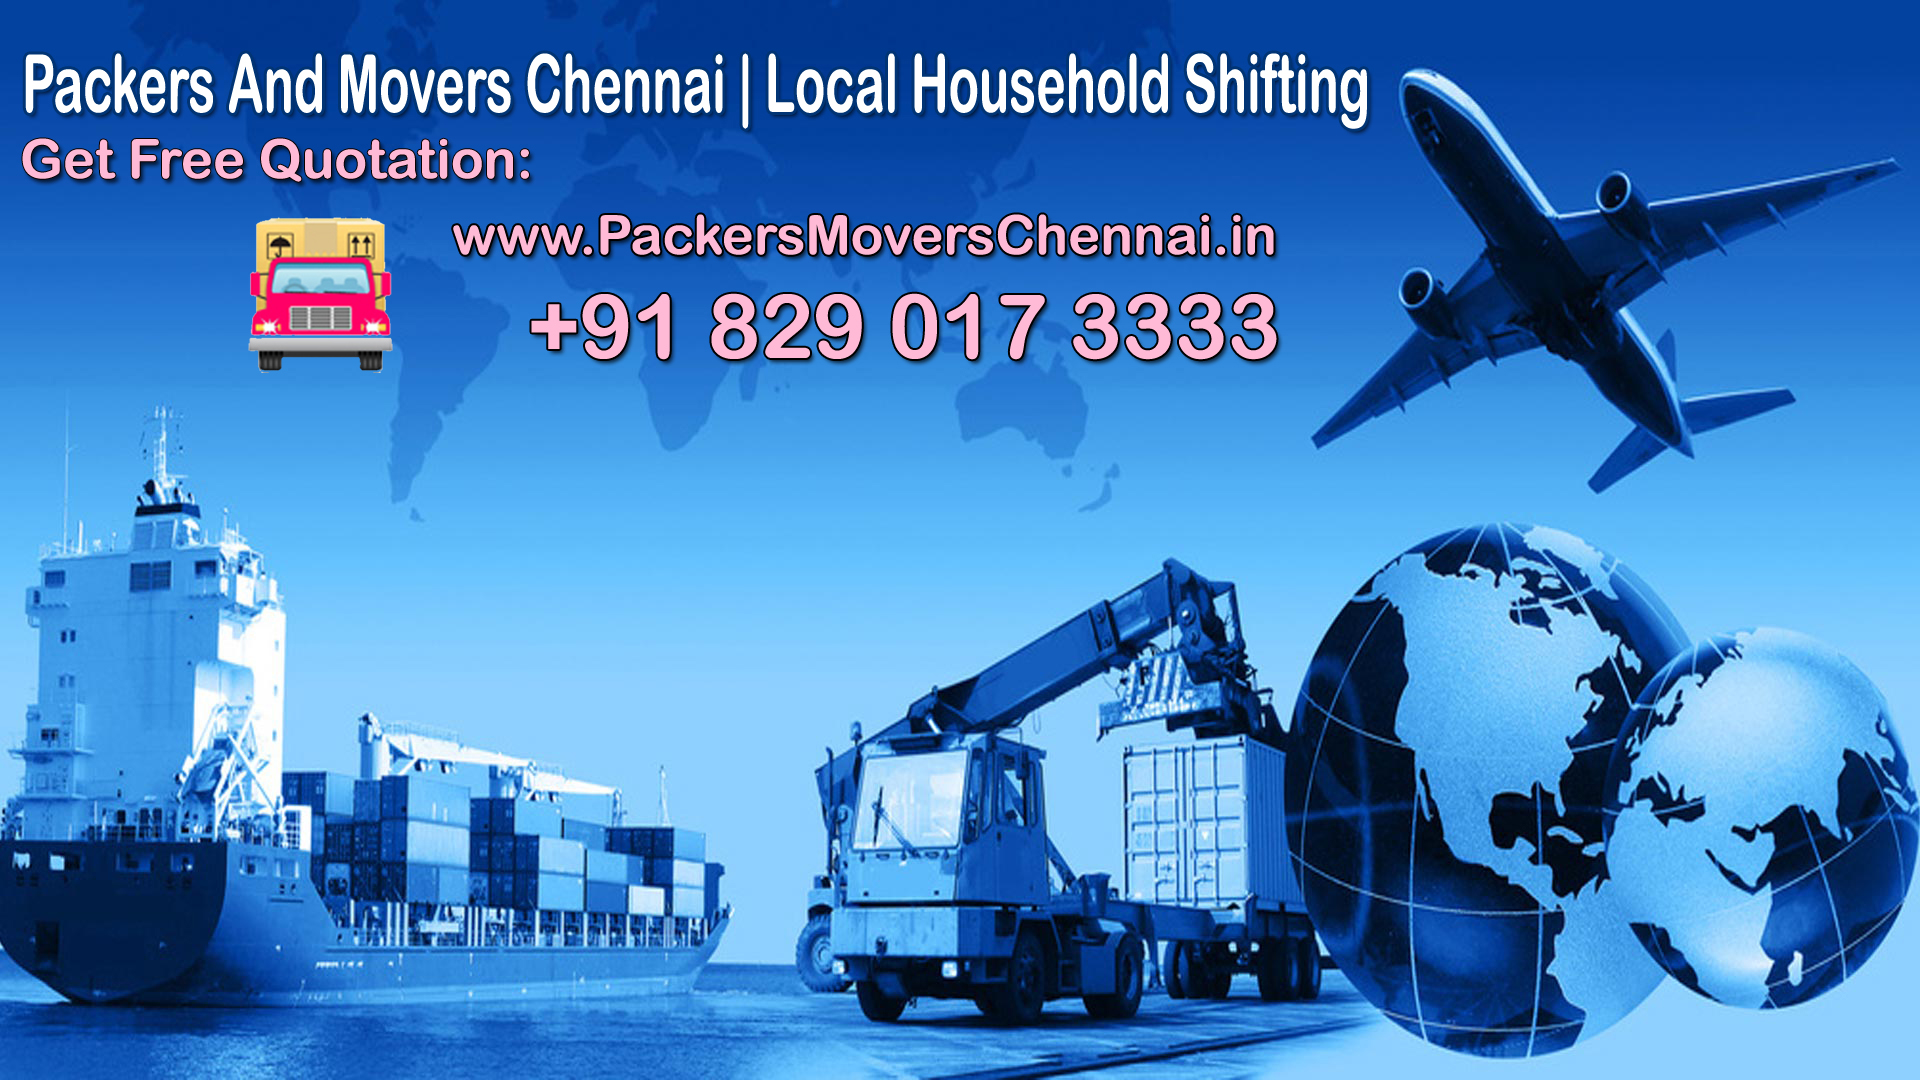 Top Movers And Packers Chennai